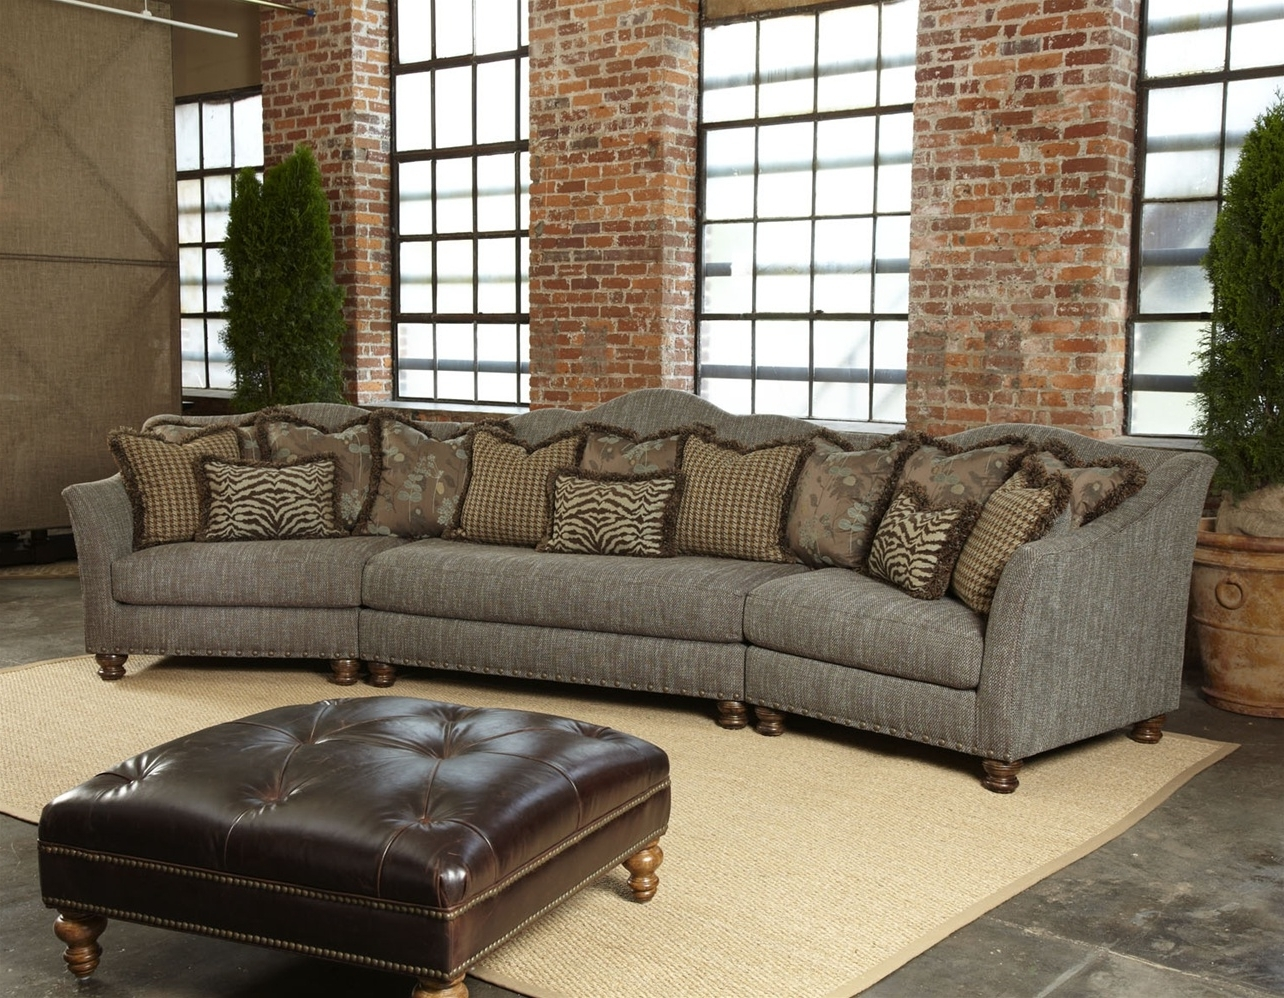 Favorite Good Quality Sectional Sofas – Cleanupflorida Regarding Sectional Sofas In North Carolina (View 3 of 15)